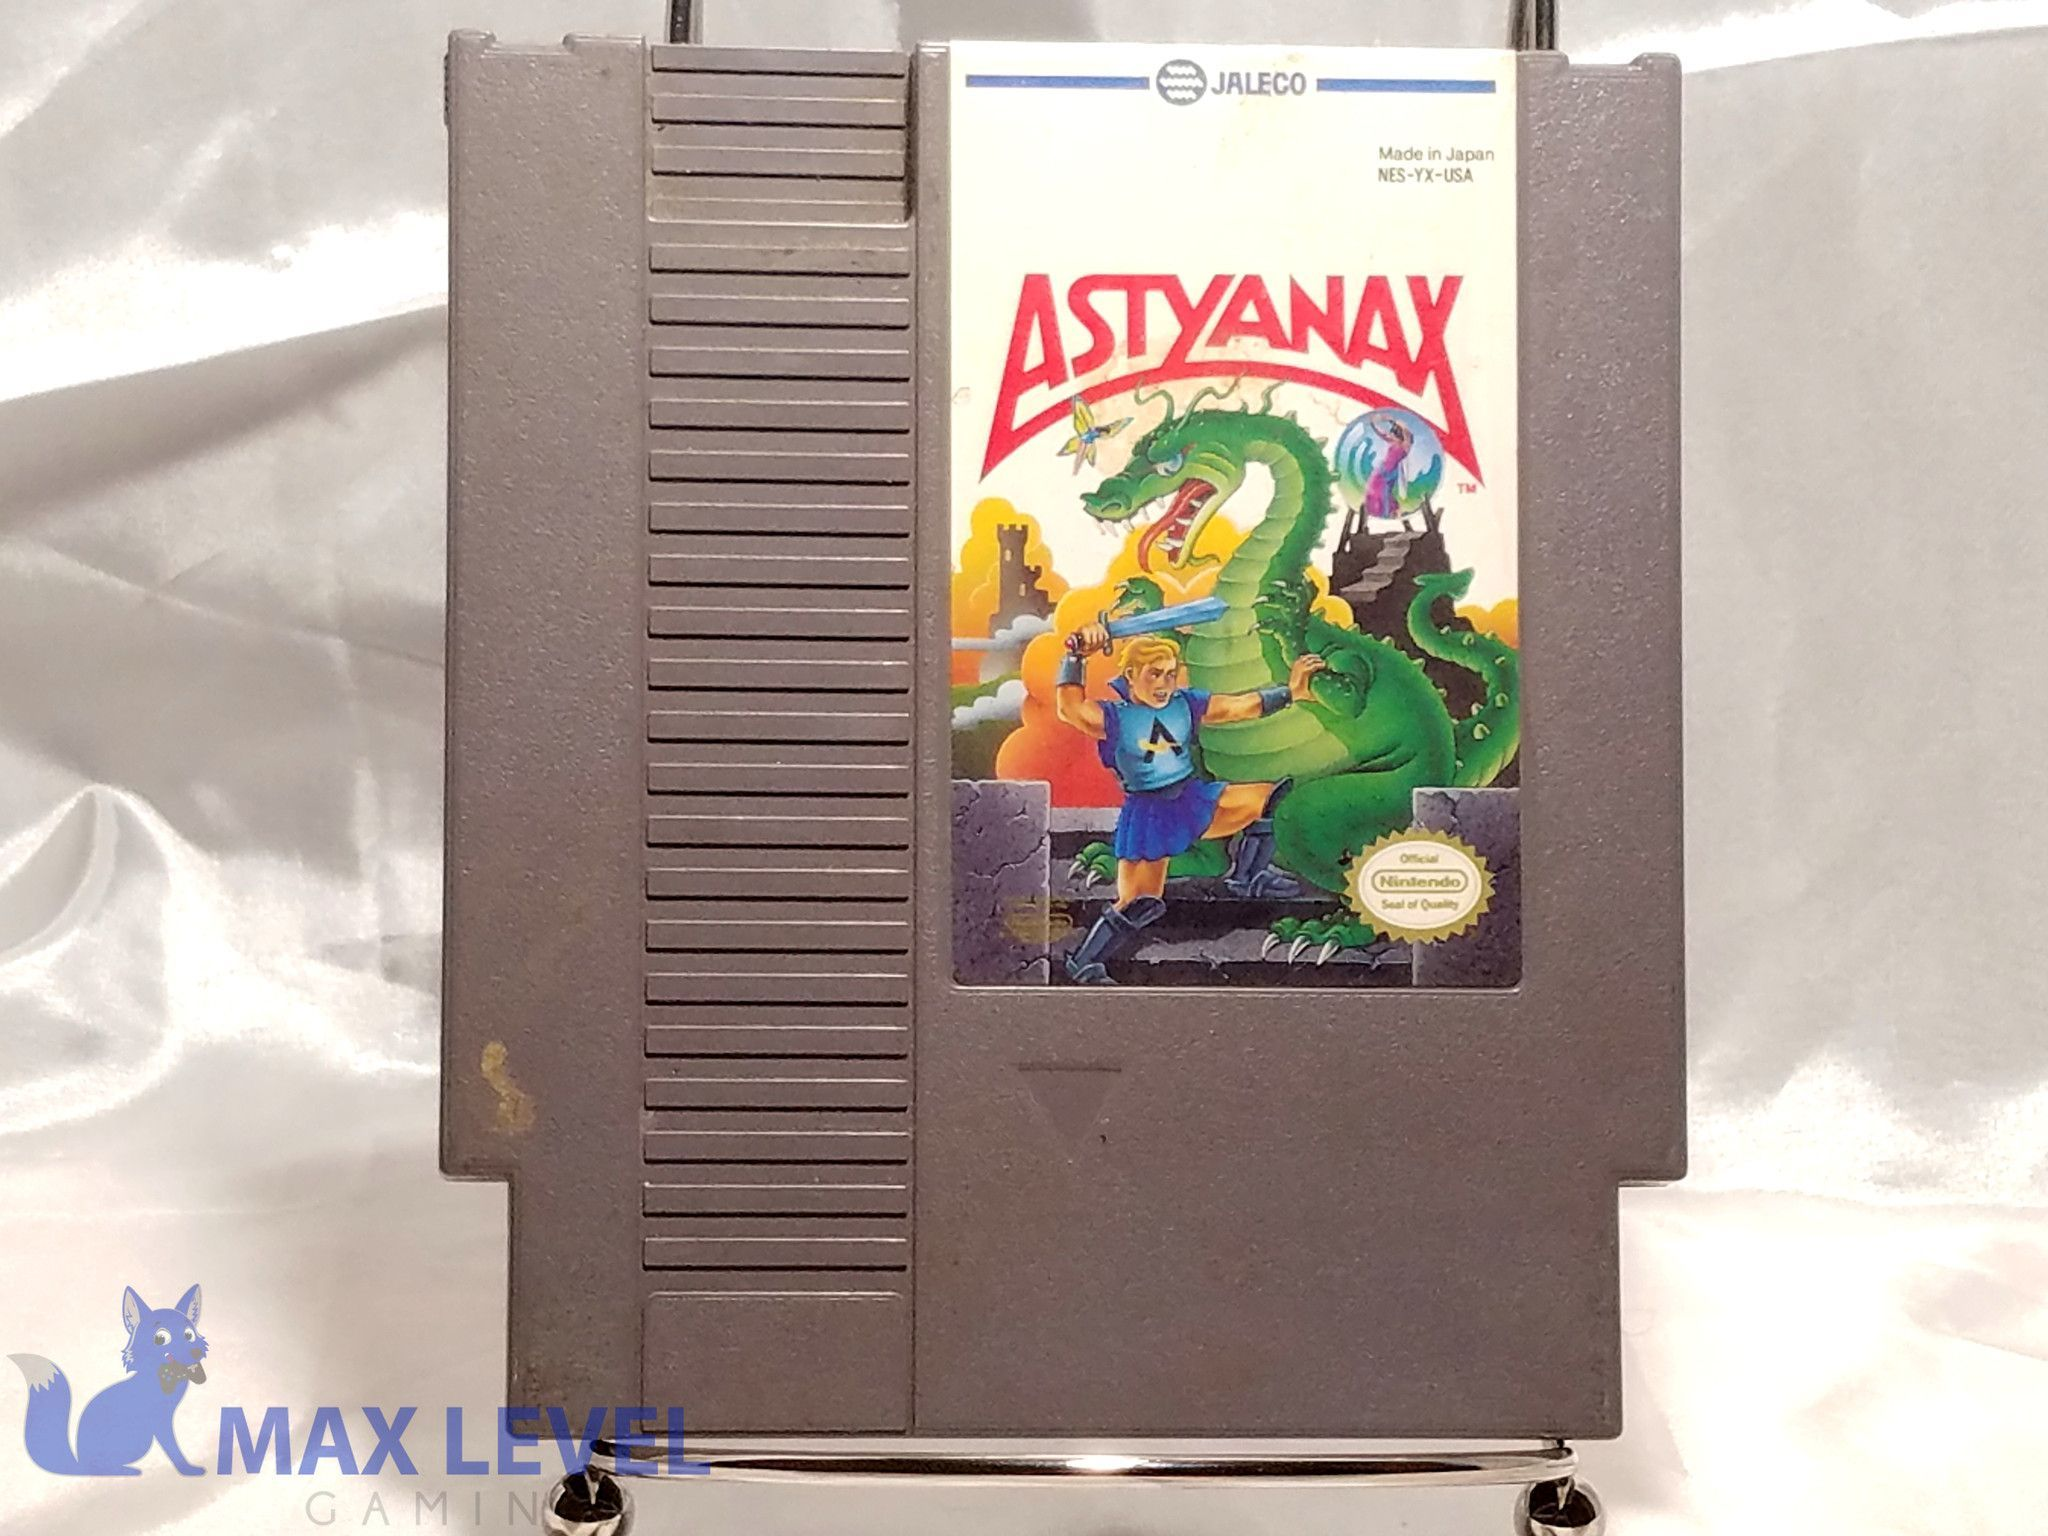 Astyanax Entertainment system, Store, Games